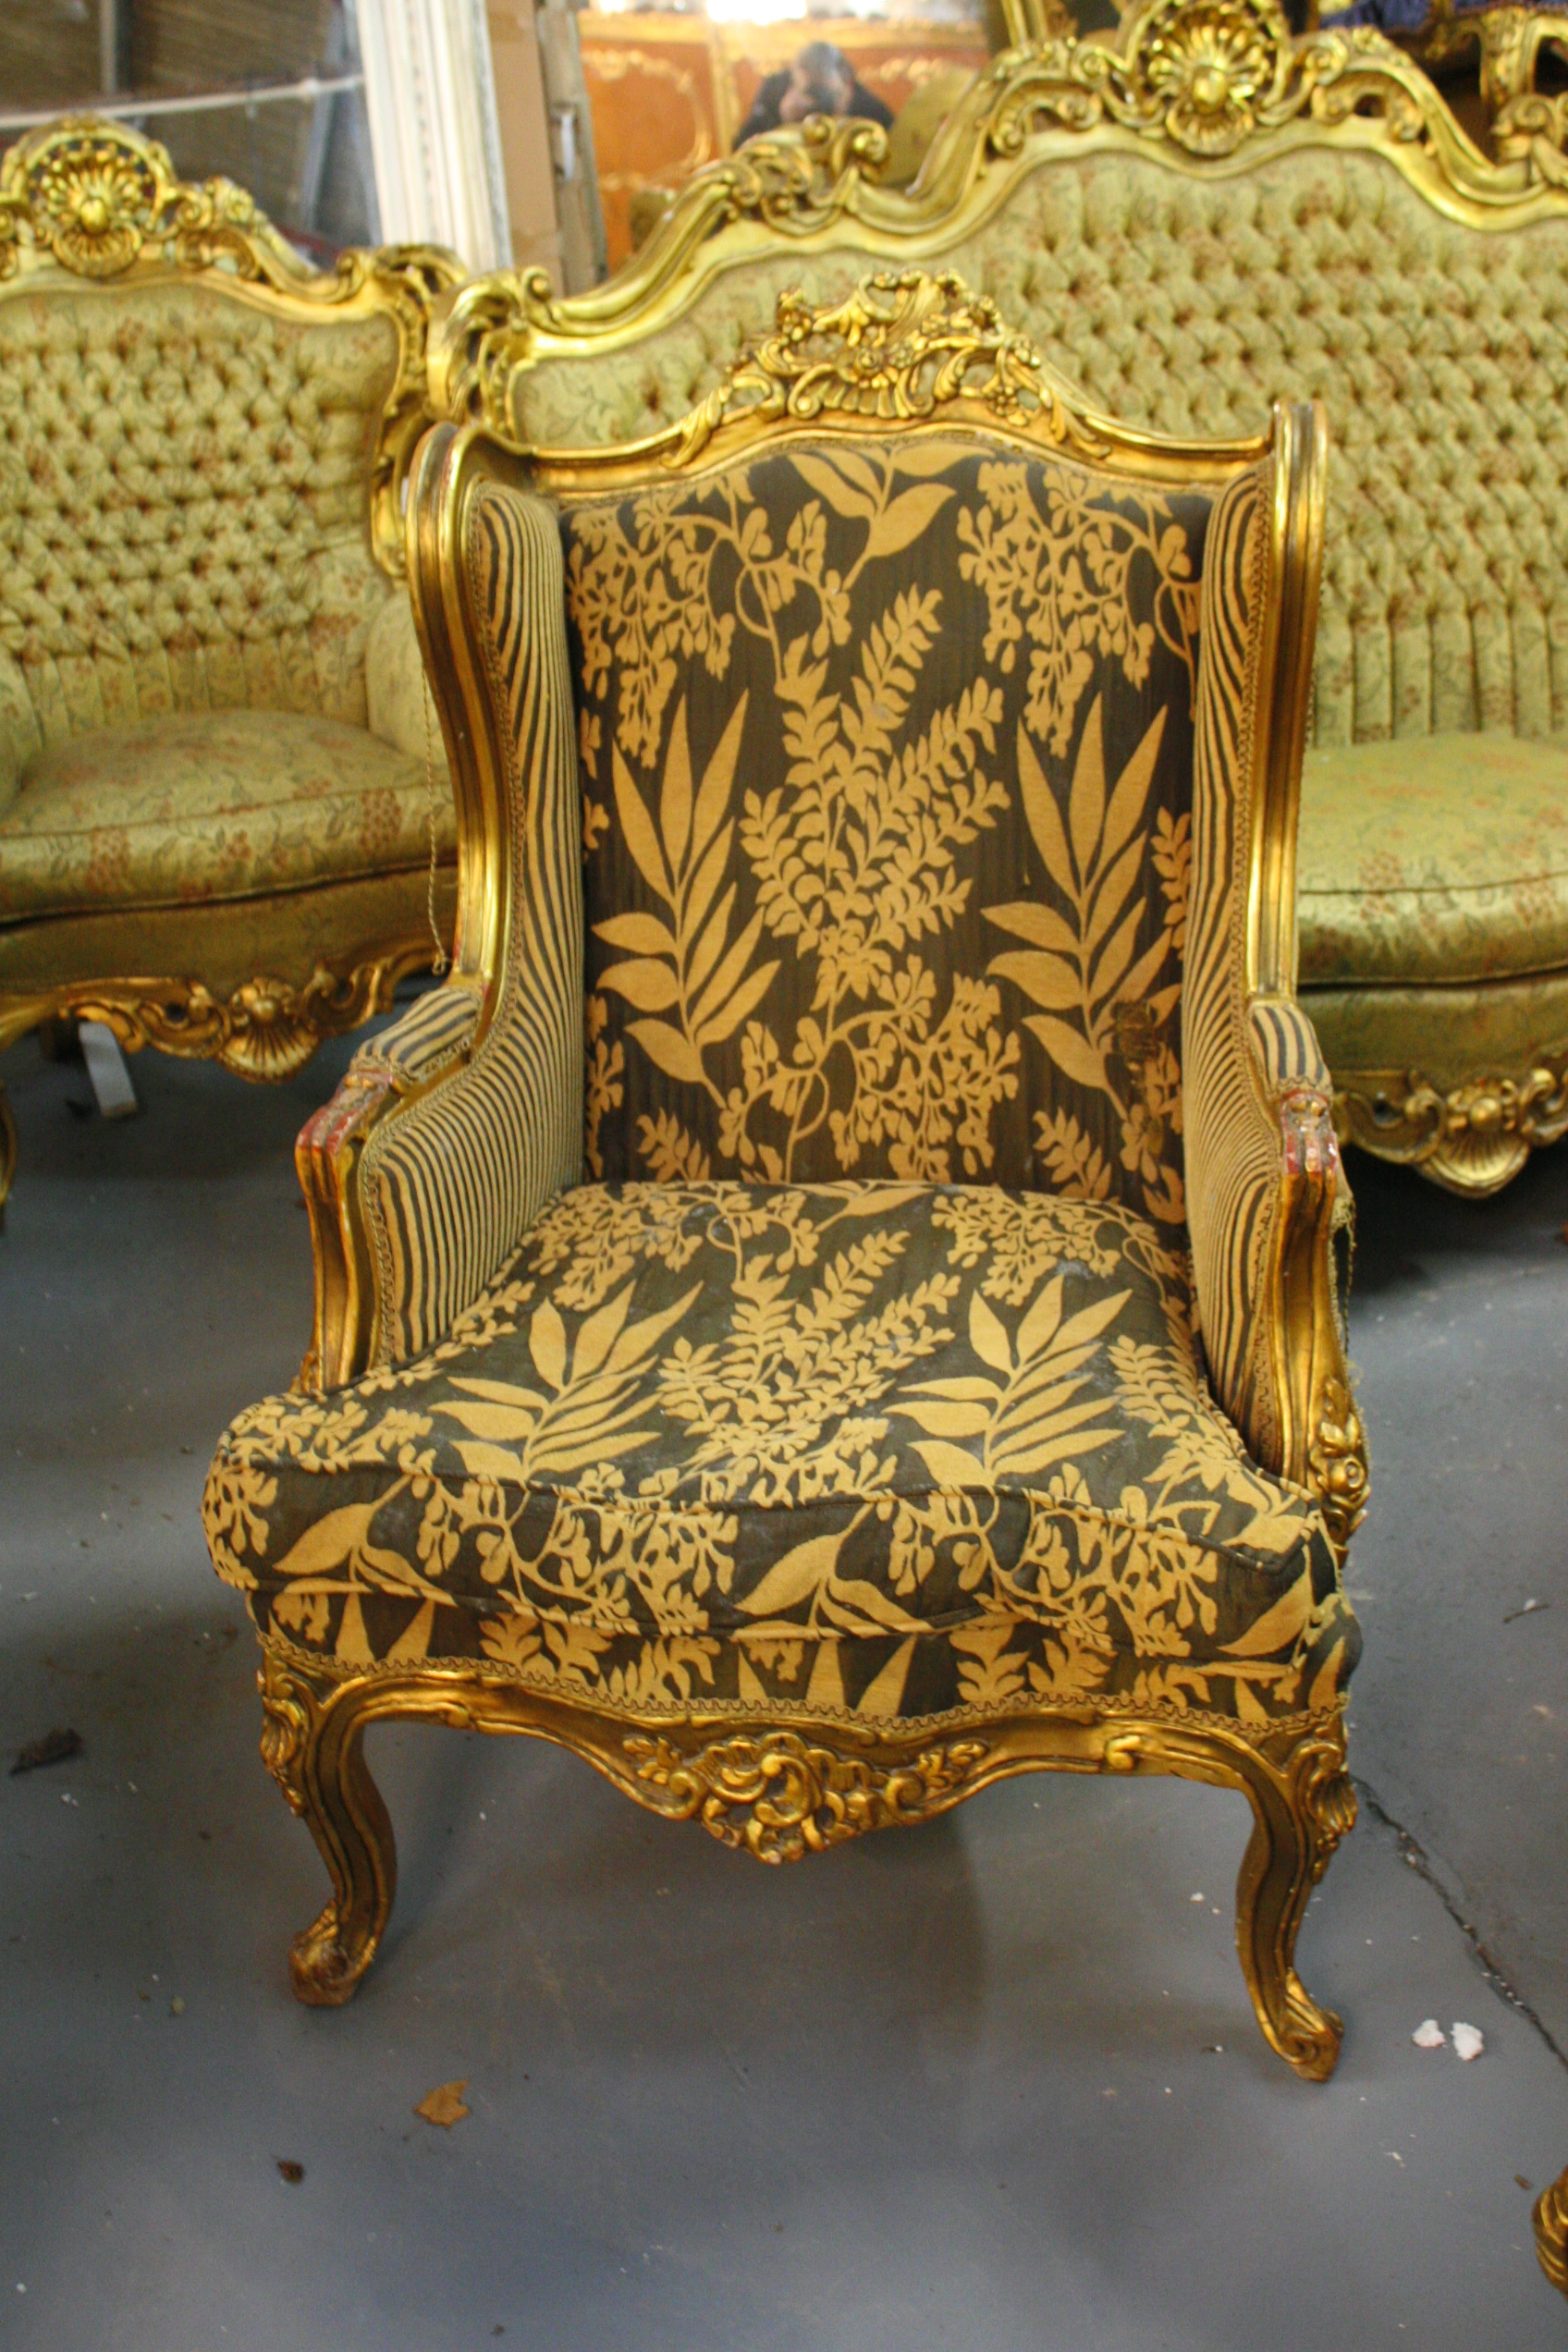 Renaissance Antique Furniture and Lighting Warehouse Dublin Ireland chairs